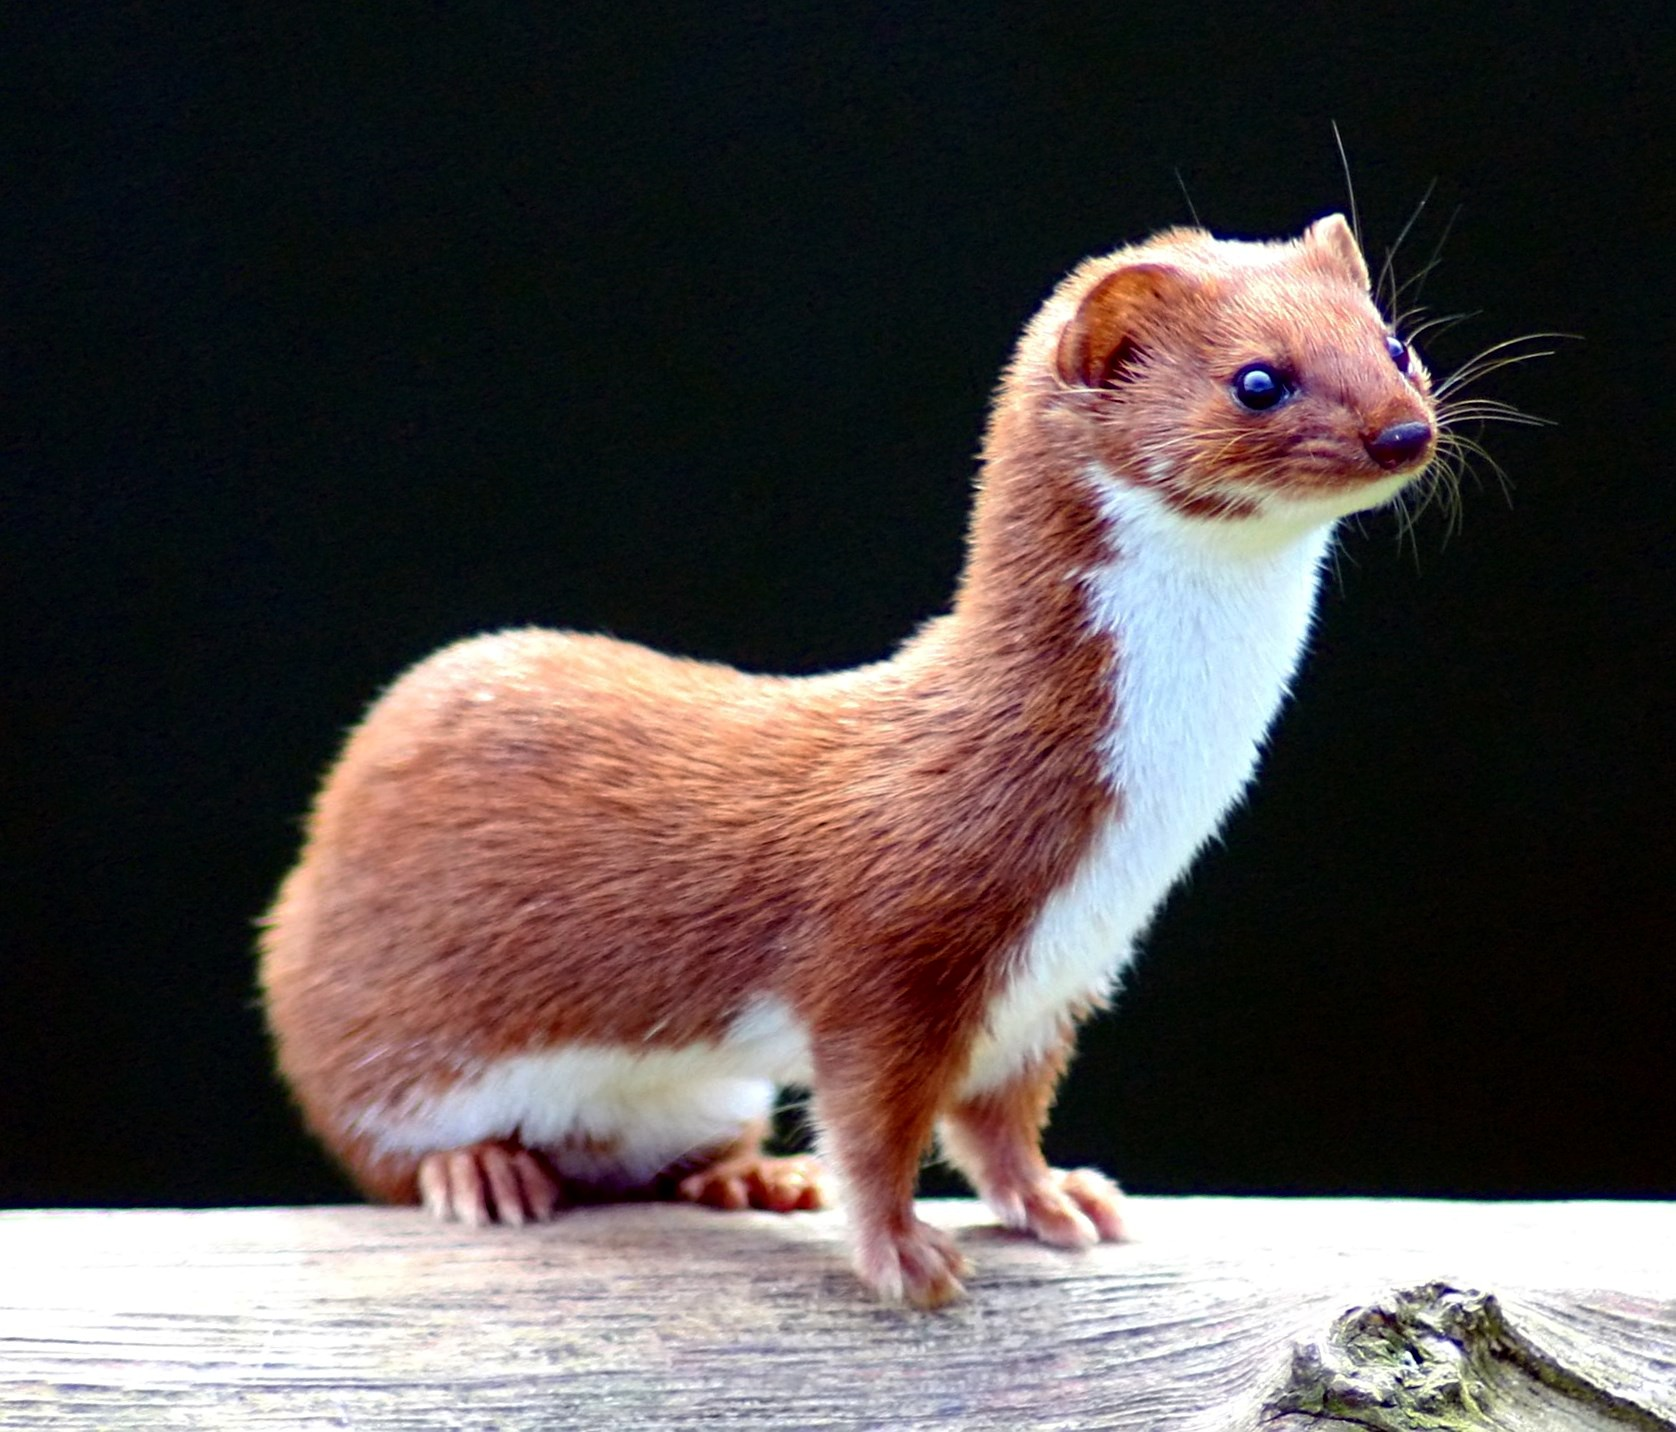 https://upload.wikimedia.org/wikipedia/commons/e/e3/Mustela_nivalis_-British_Wildlife_Centre-4.jpg